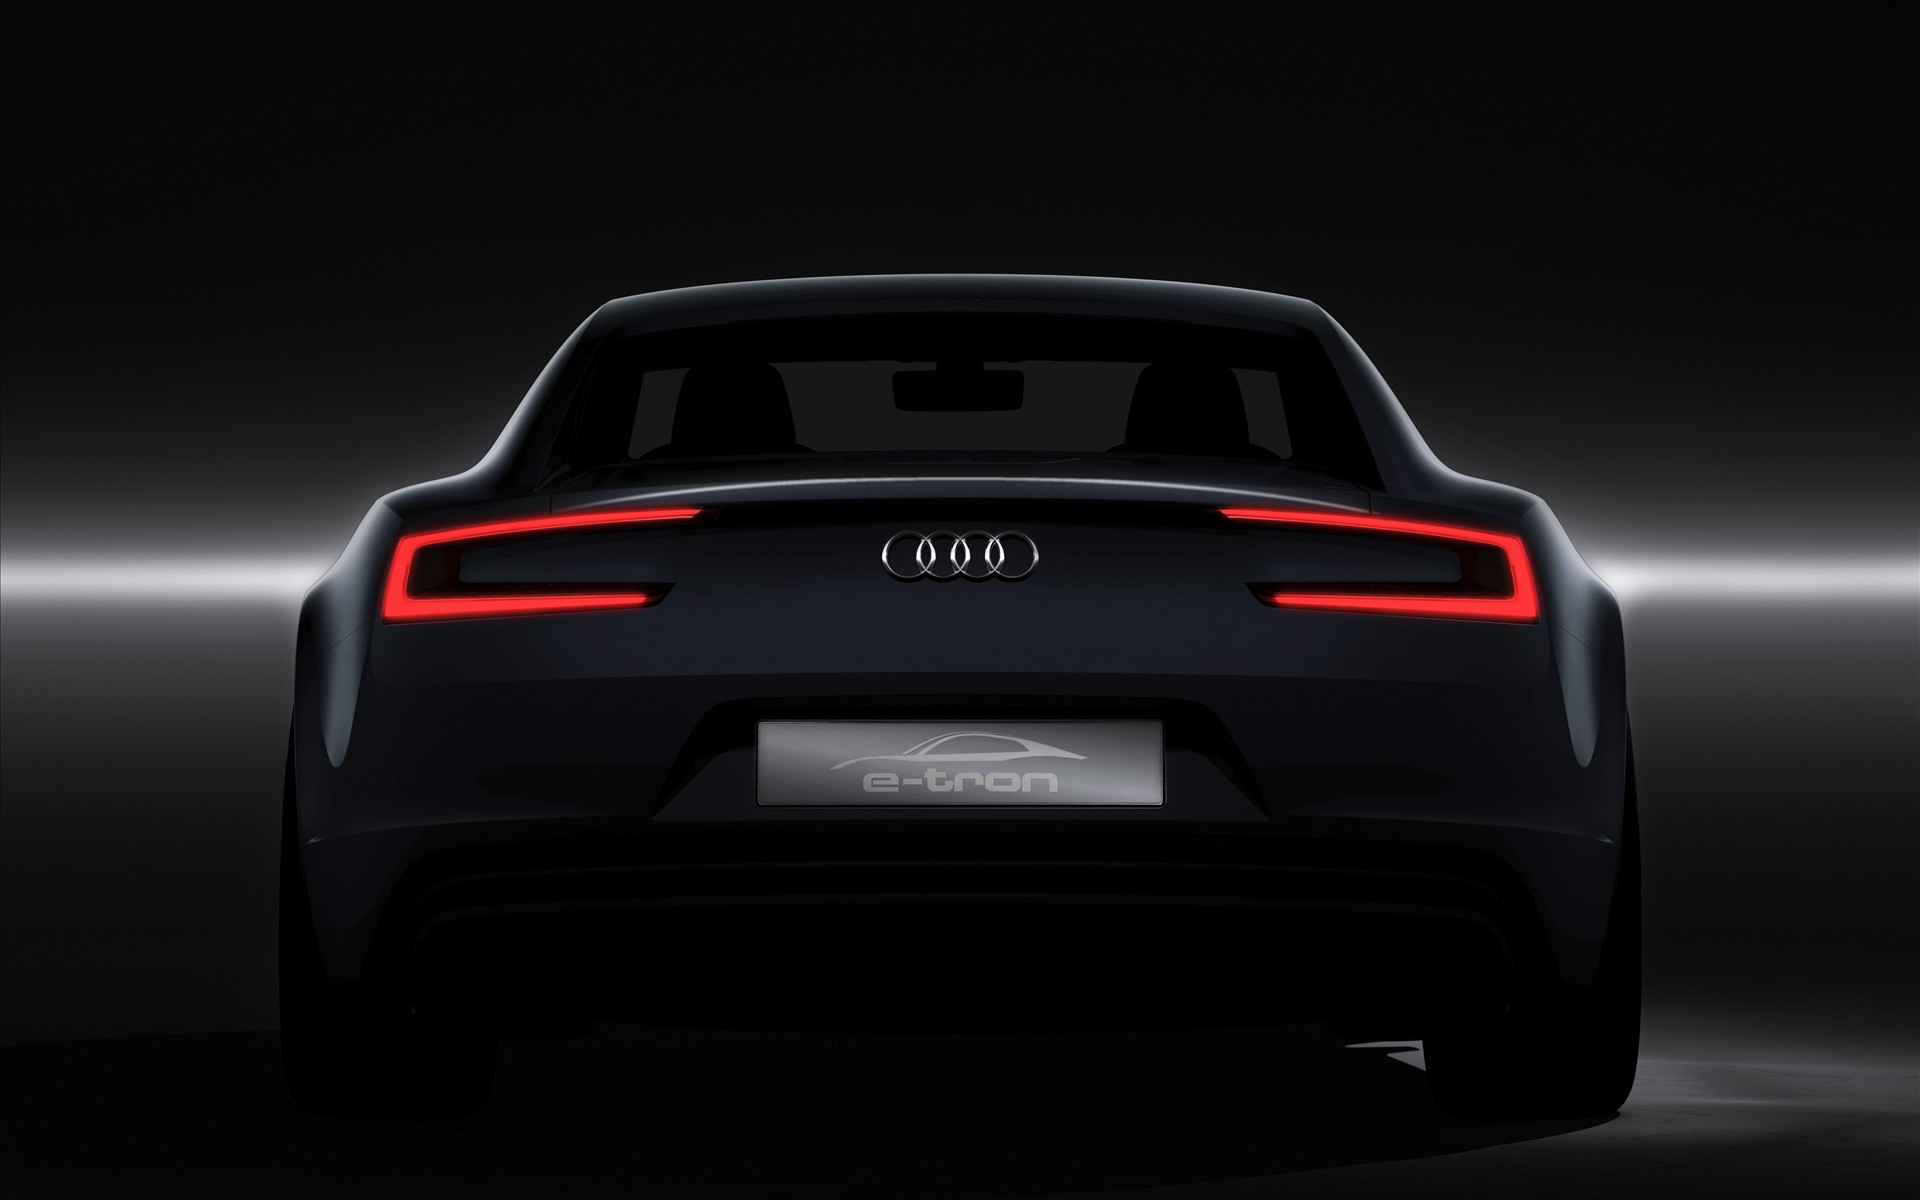 Audi Tron Wallpaper HD Desktop 323 Wallpaper Cool Walldiskpapercom 1920x1200